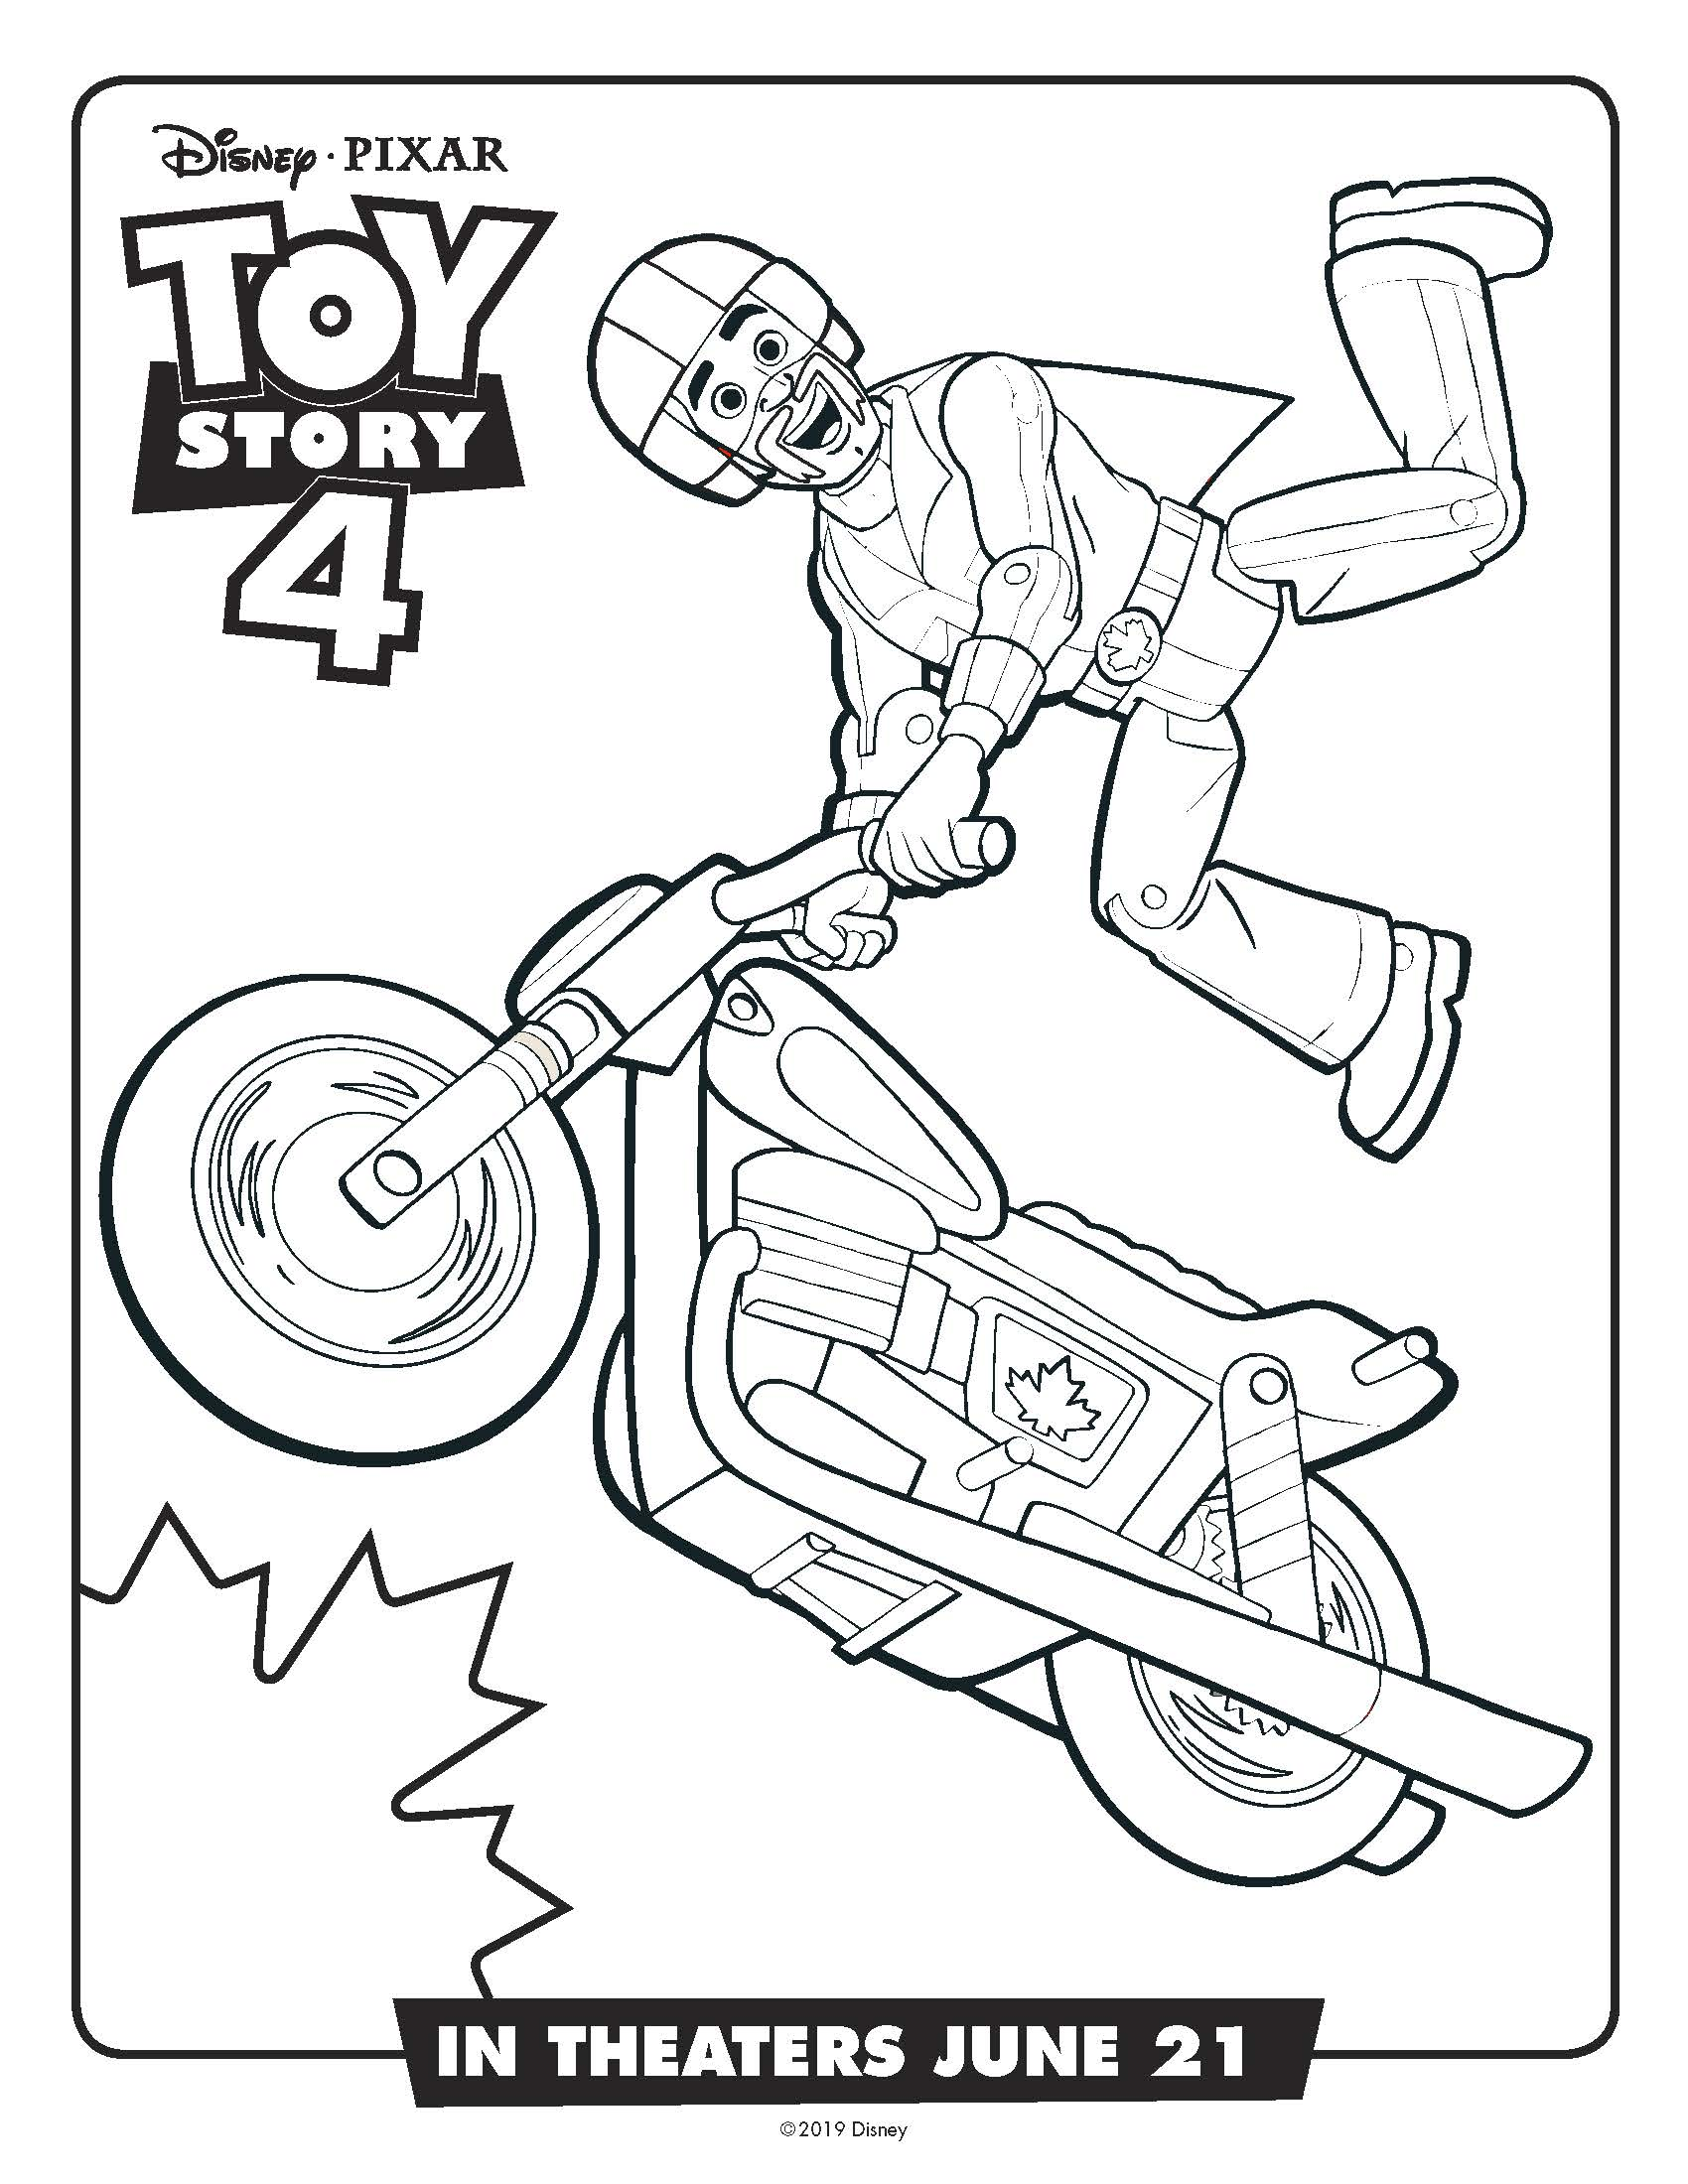 Free Printable Toy Story Duke Caboom Coloring Page Mama Likes This